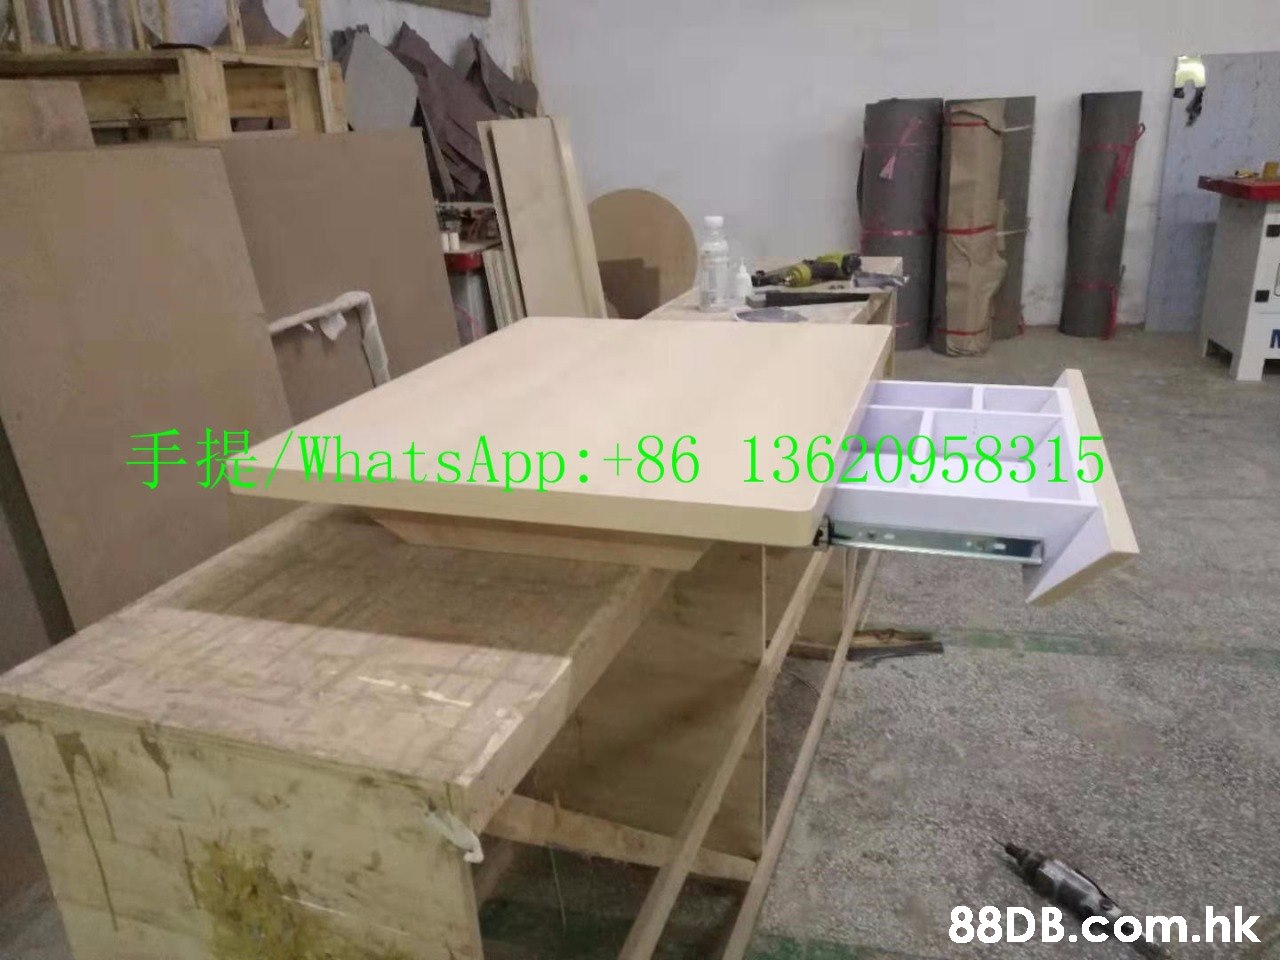 WhatsApp: +86 13620958315 .hk  Table,Furniture,Wood,Plywood,Marble